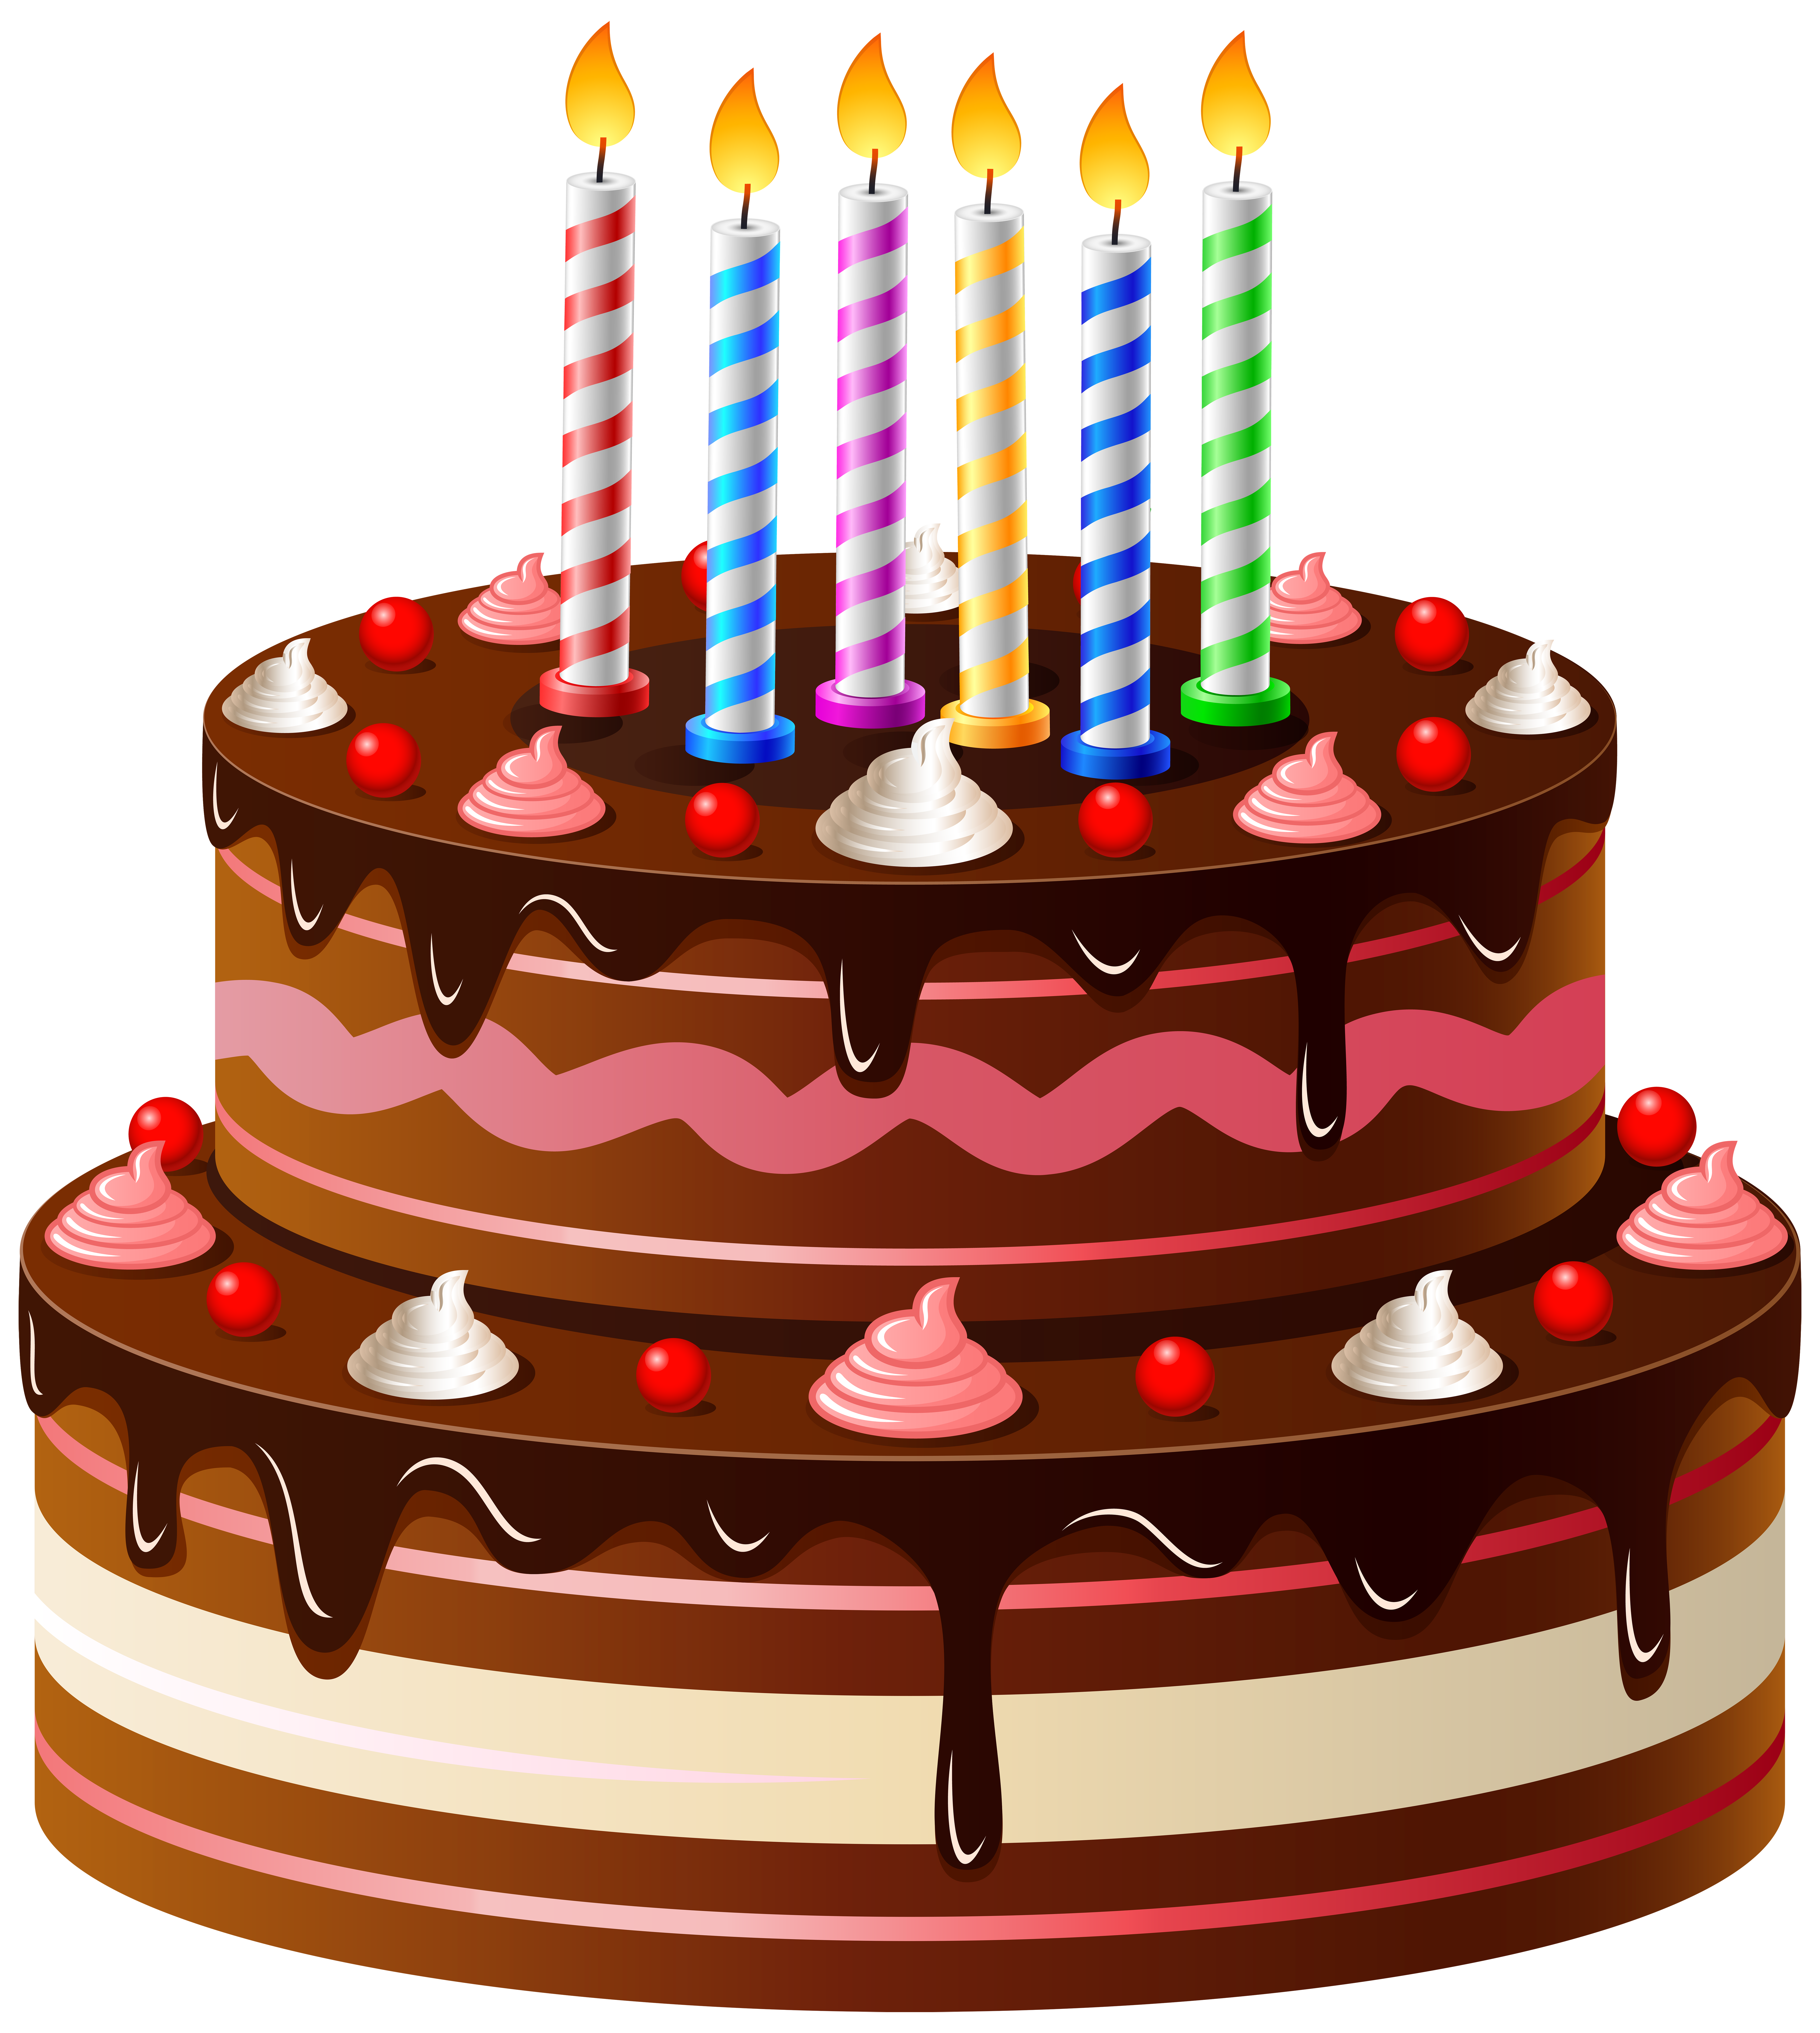 Cake png clip art. Gifts clipart birthday accessory